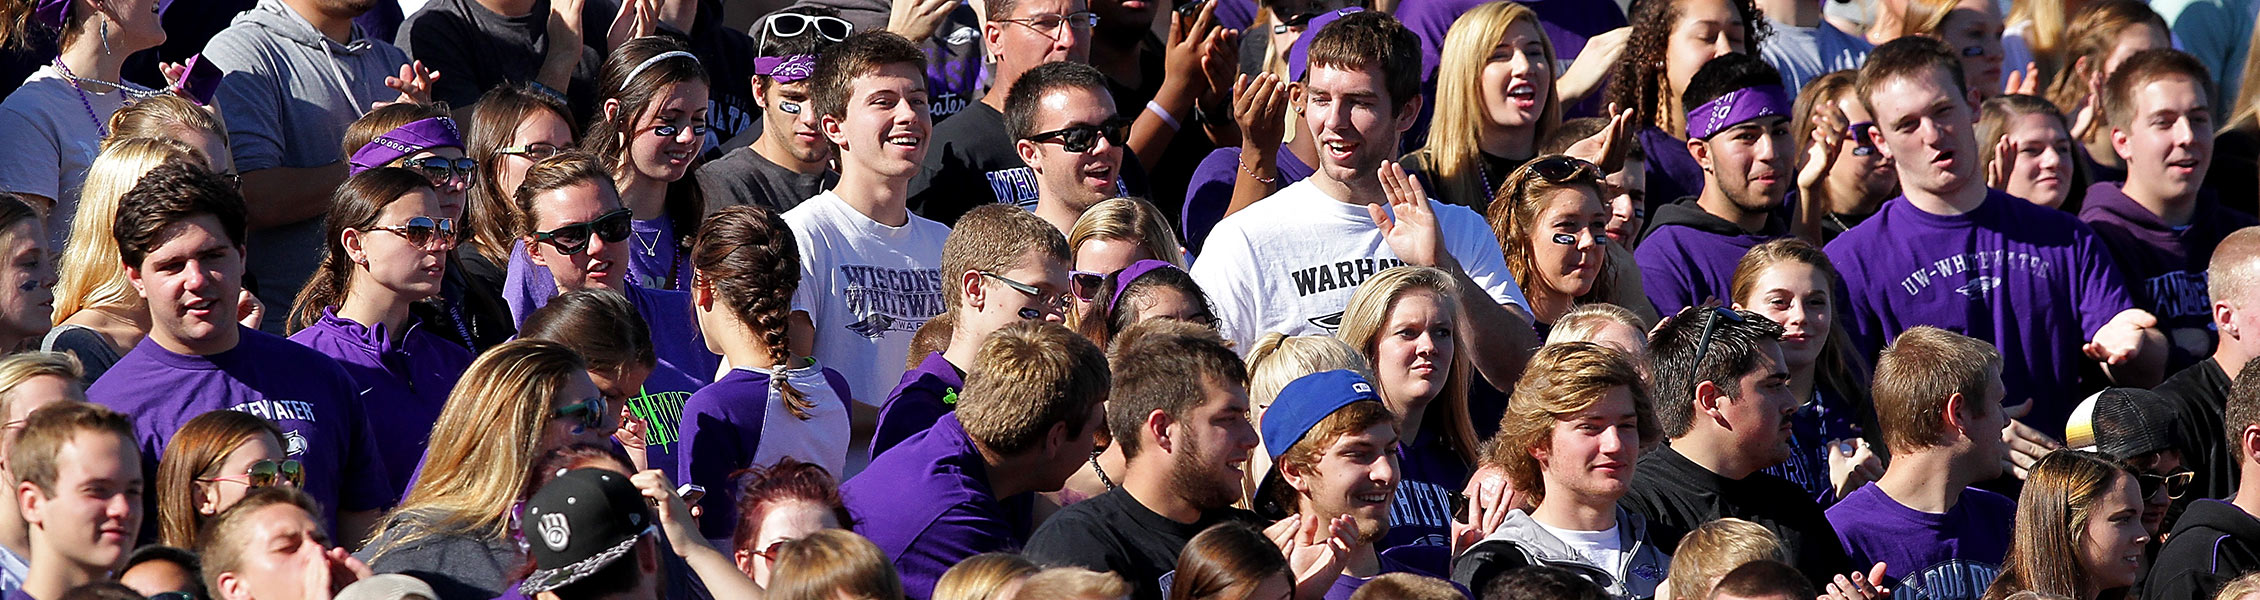 UW-Whitewater student financial services